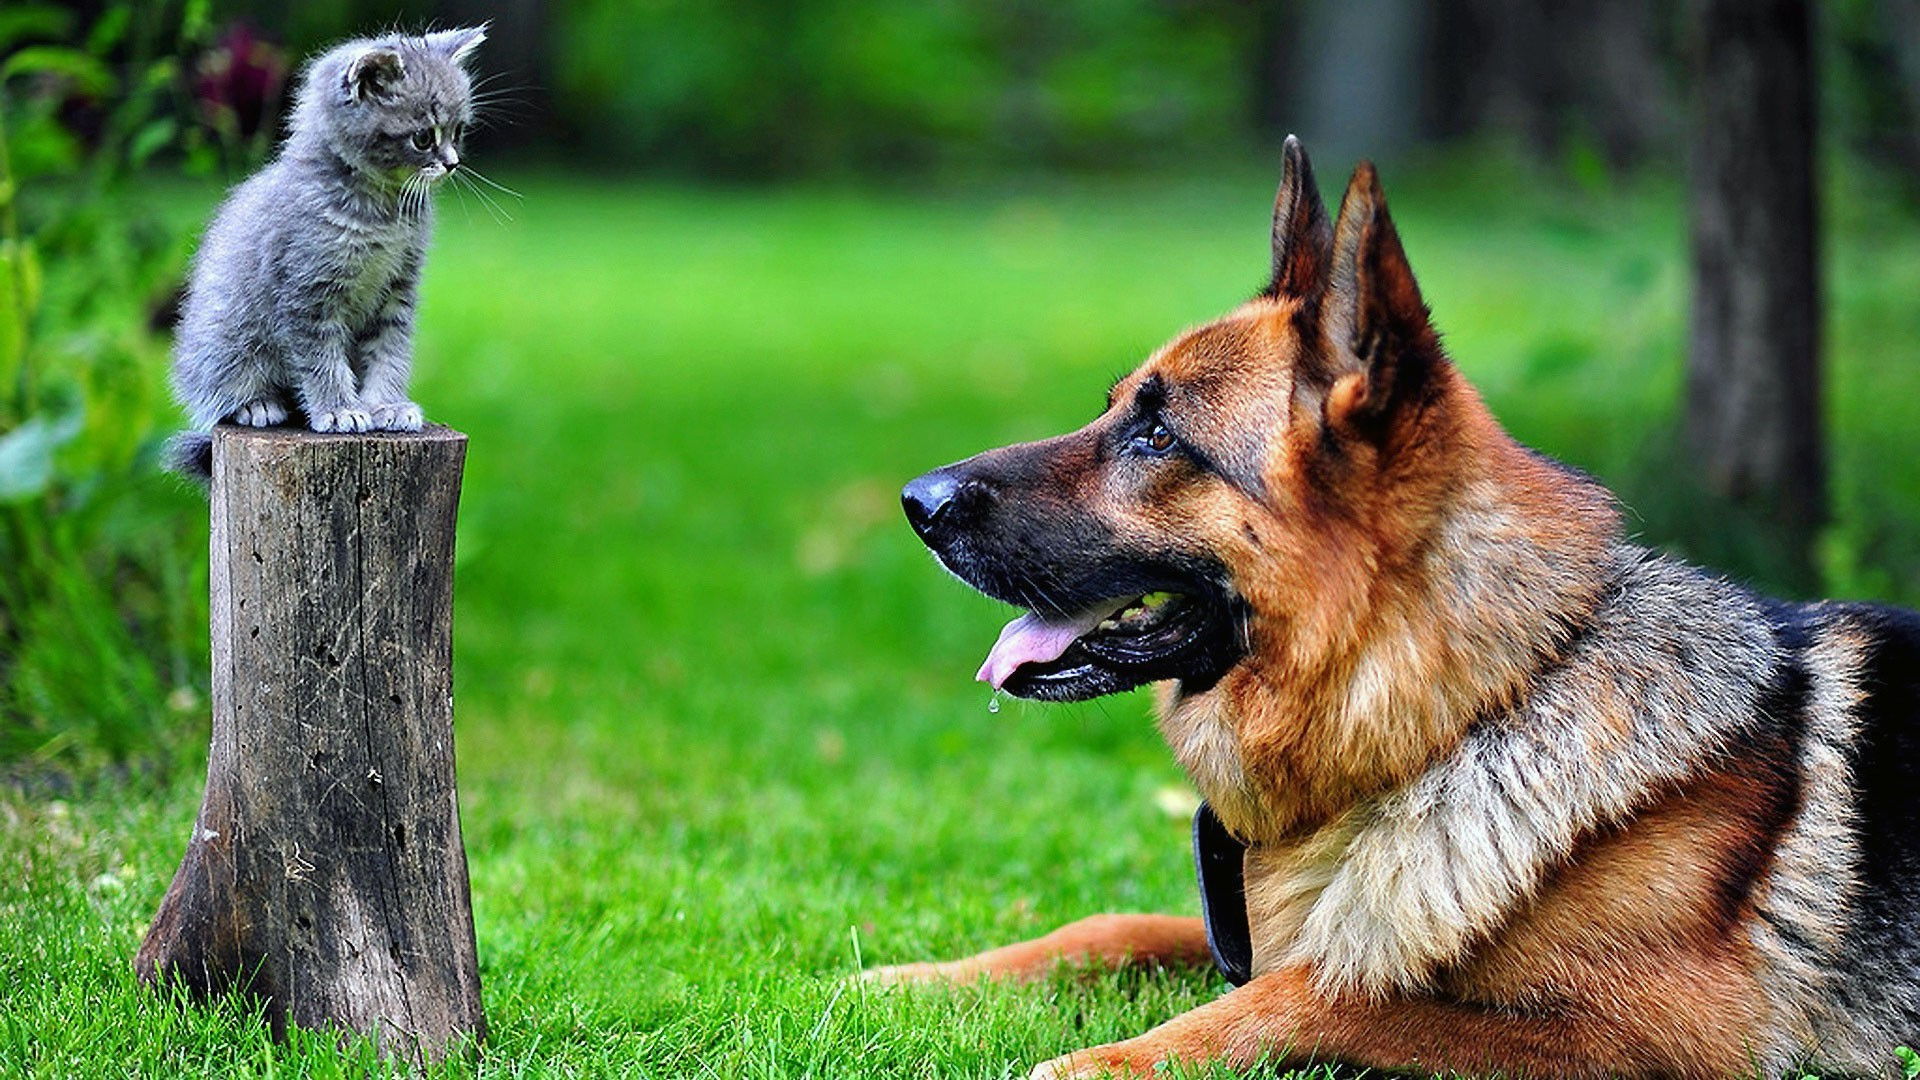 1920x1080 dog, Kittens, German Shepherd, Animals, Cat, Tree Stump Wallpapers HD /  Desktop and Mobile Backgrounds